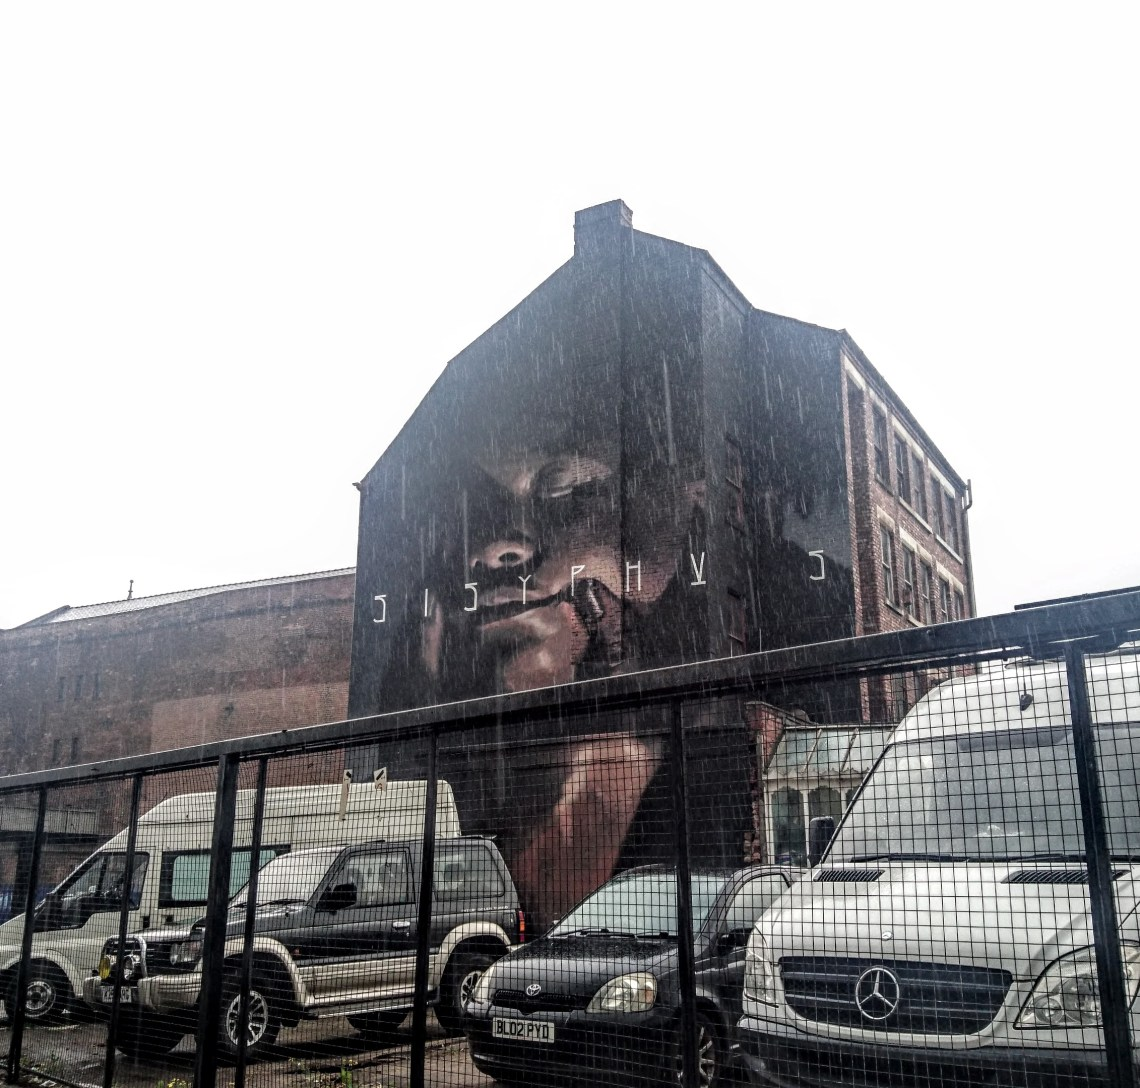 Mural by Axel Void in Manchester on Addington street. This was painted for the Cities of Hope Festival in 2016